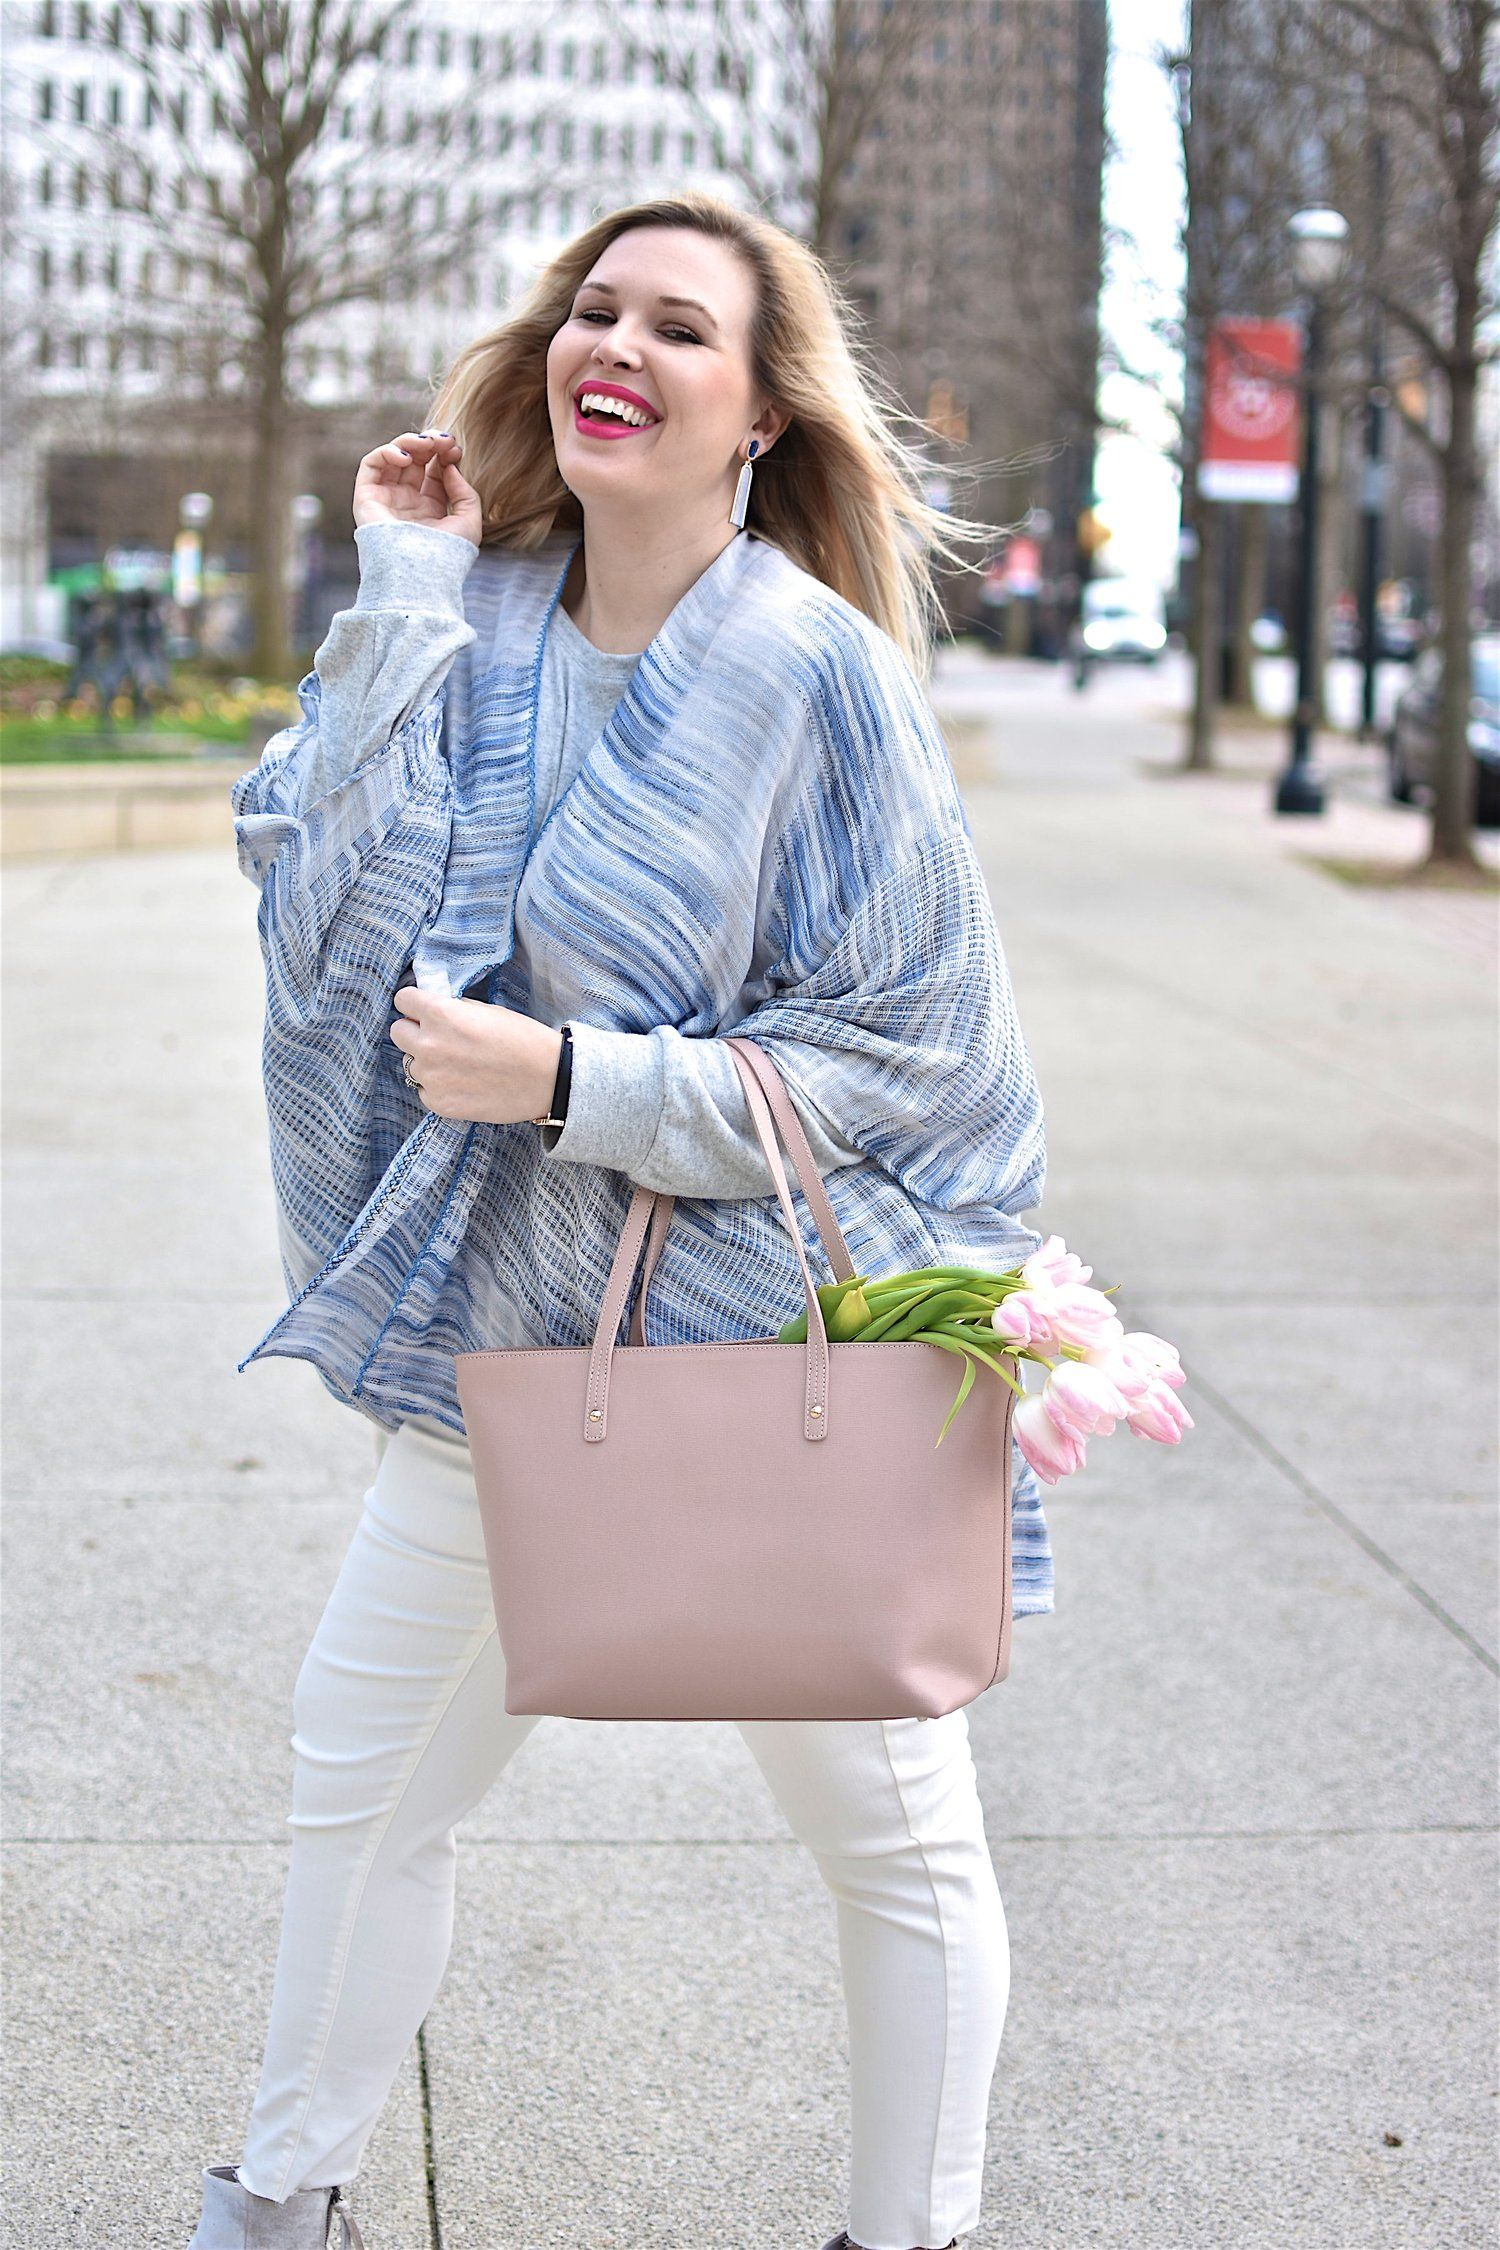 a515270971c Spring kimono blue white jeans spring style cute outfits tulips pastel pink  blonde plus size style curvy style